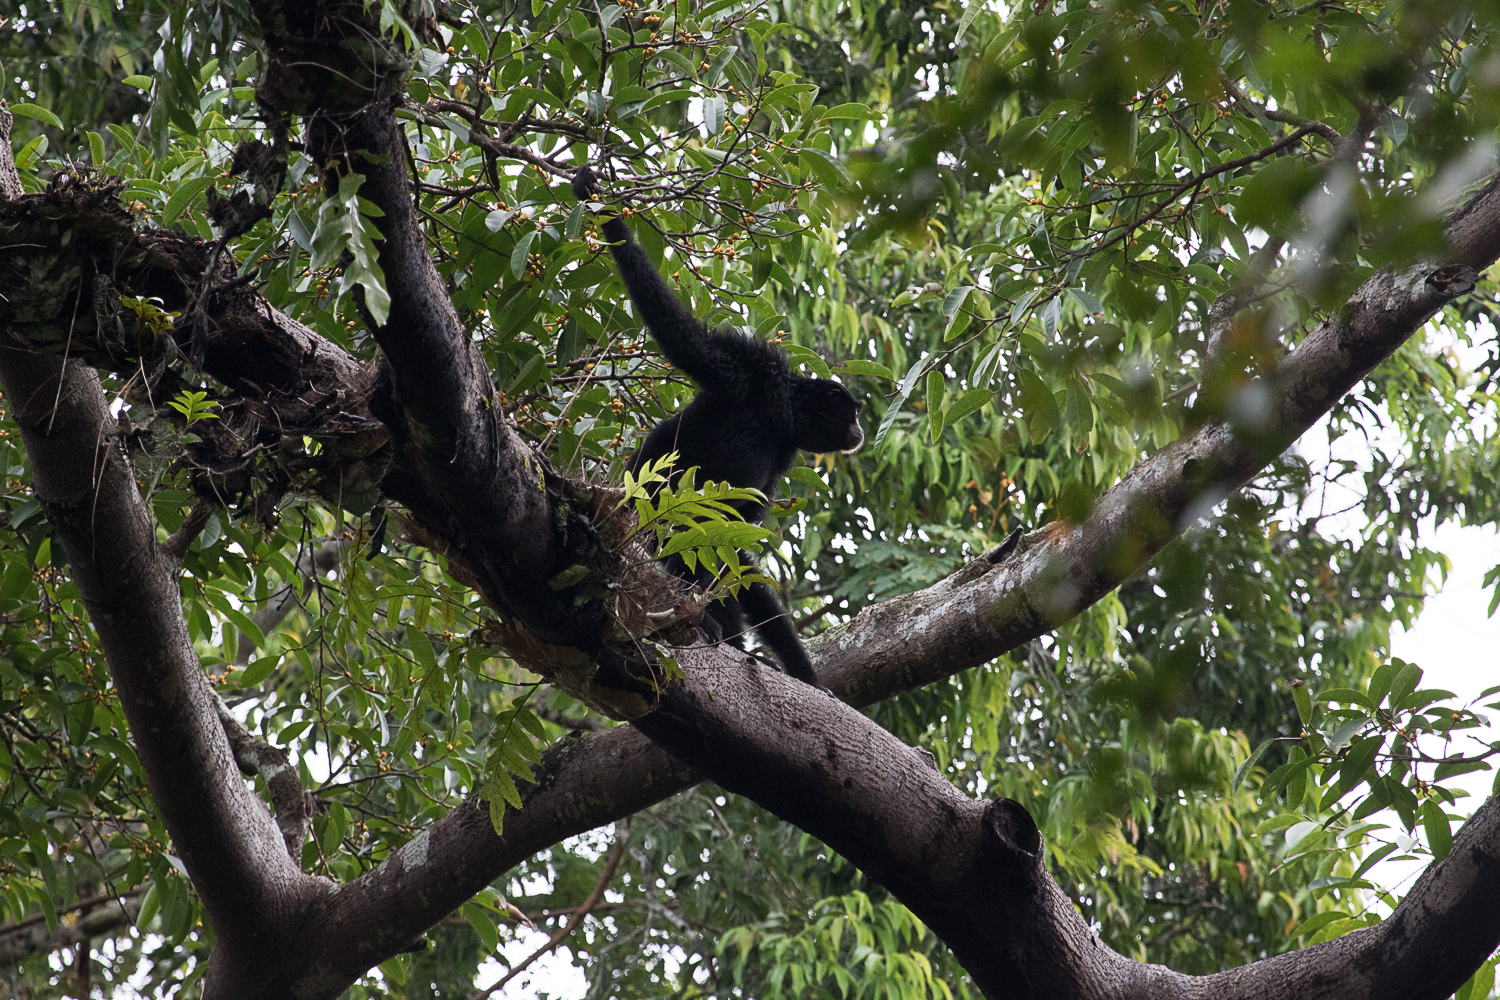 ... and Siamang Gibbon.